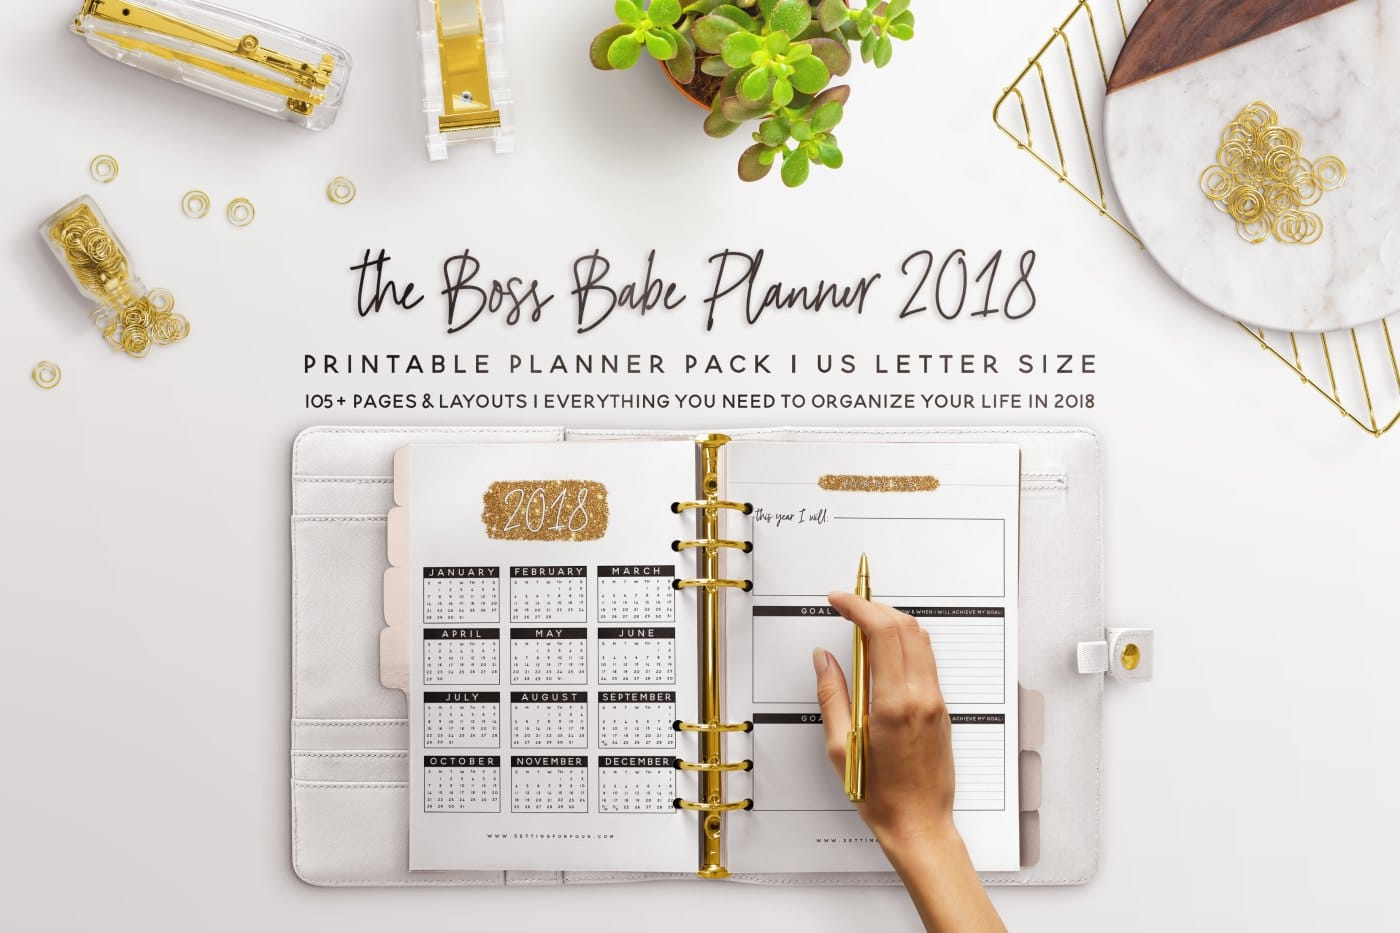 Take the stress out of your crazy schedule, get organized and STAY SANE with this Boss Babe Printable Planner Pack that includes 106 Printable Pages to plan your ENTIRE YEAR! You'll love the CHIC gold, white and black sparkly design! Includes printable checklists, tracking sheets, to do lists, places to be and calendars too! #planner #printable #organization #2018